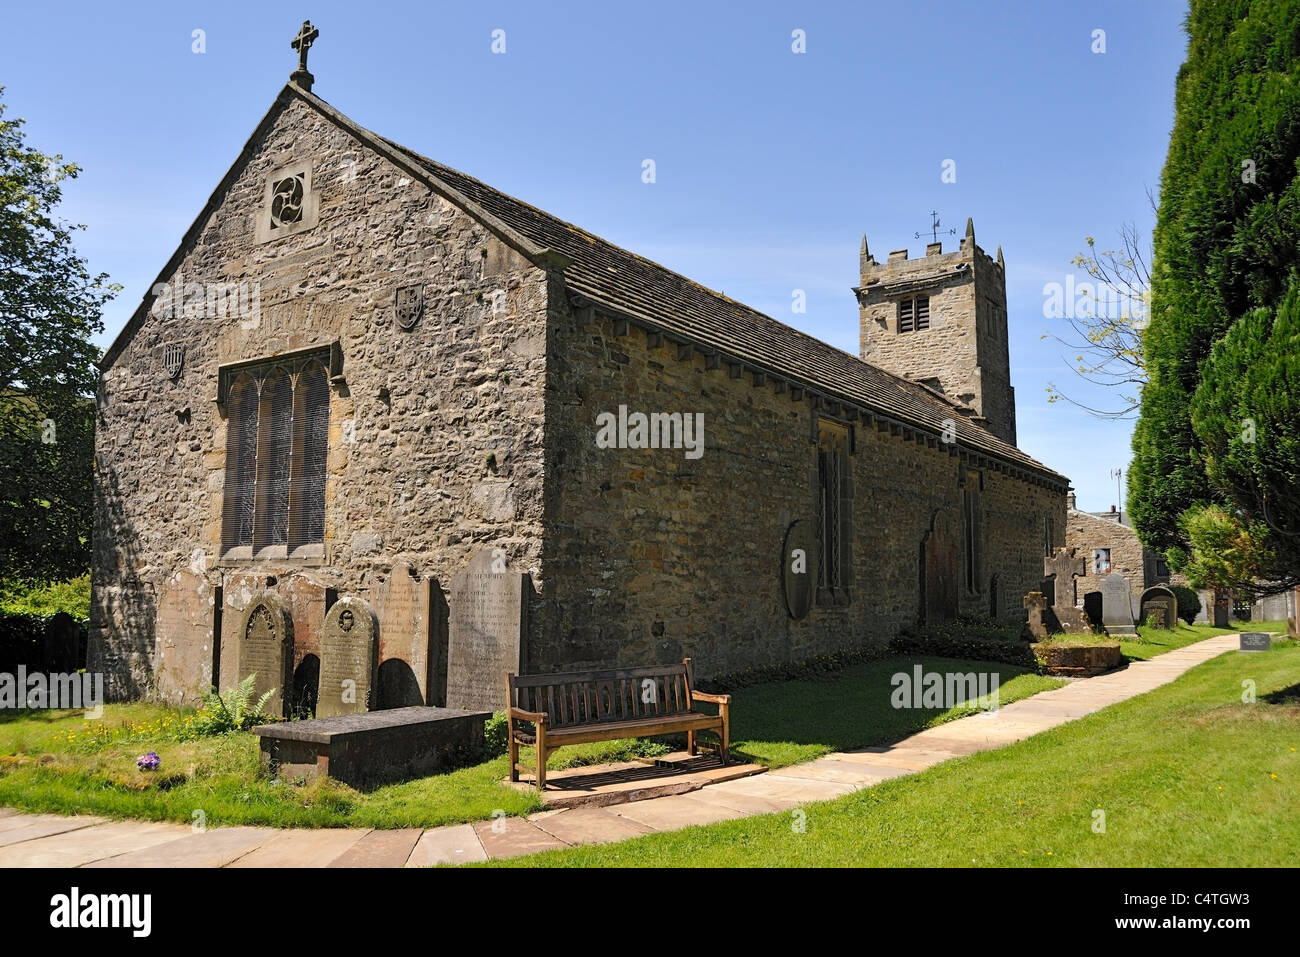 St. Mary the Virgin Church, Muker, Swaledale, Yorkshire, England - Stock Image